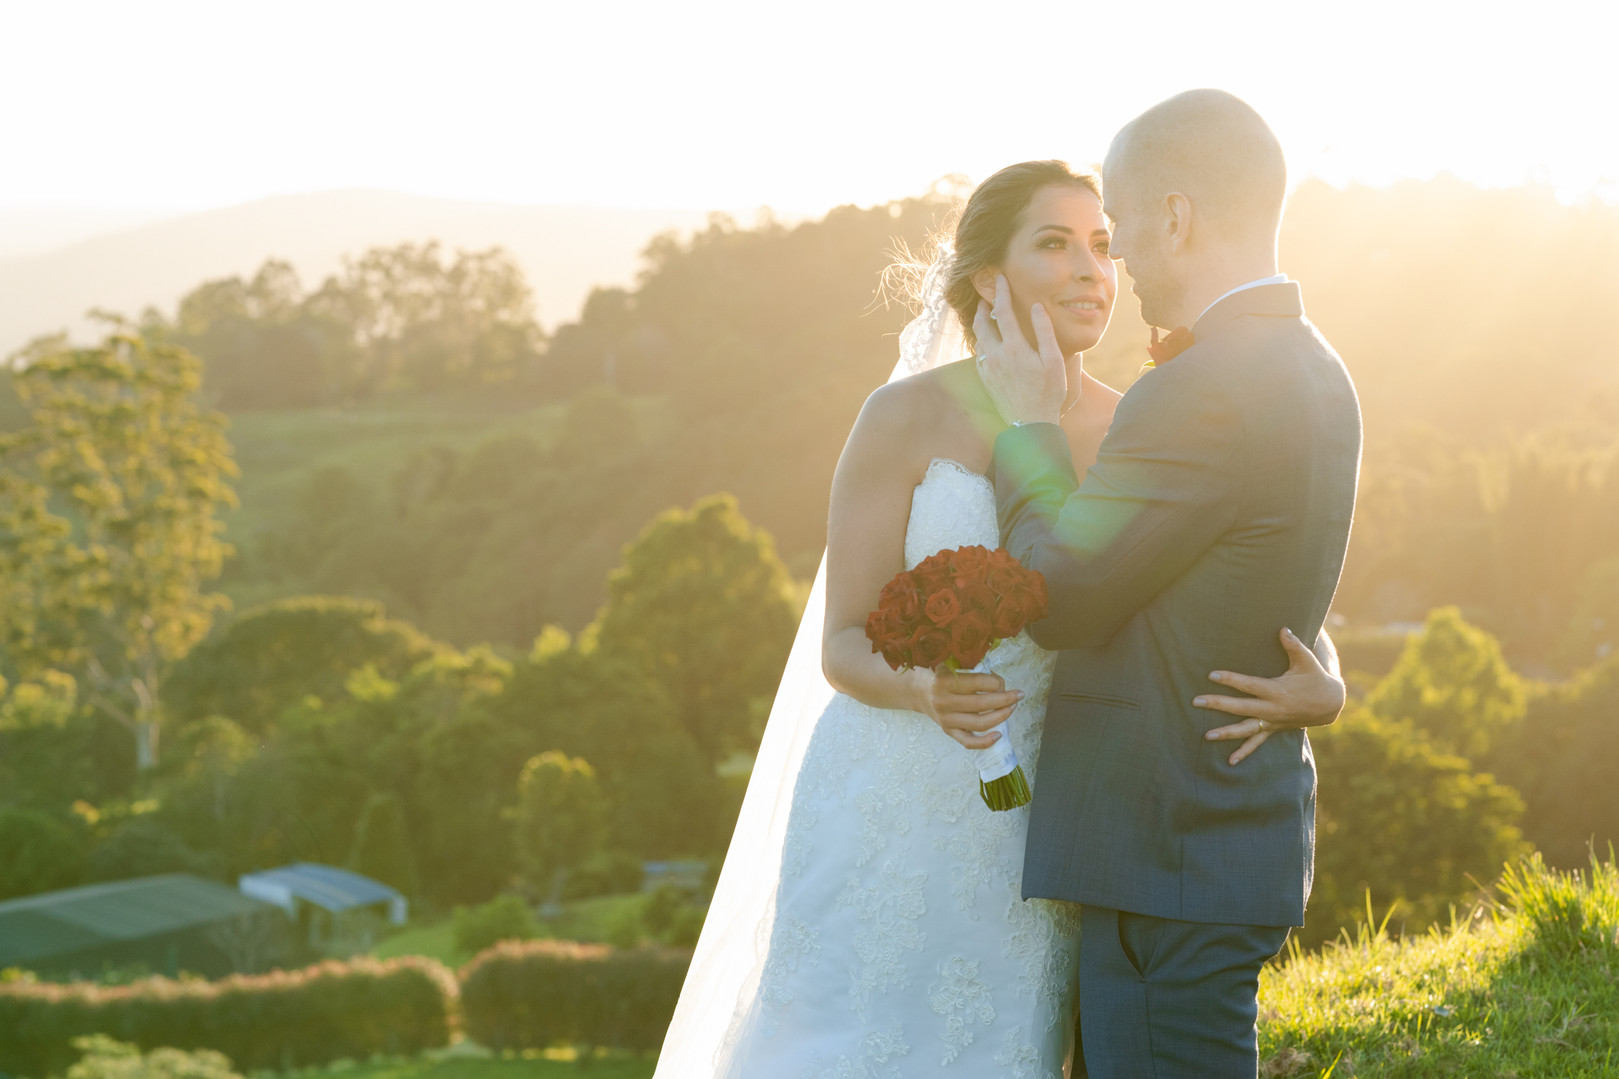 Wedding photography | The Chapel & Poets Cafe, Montville